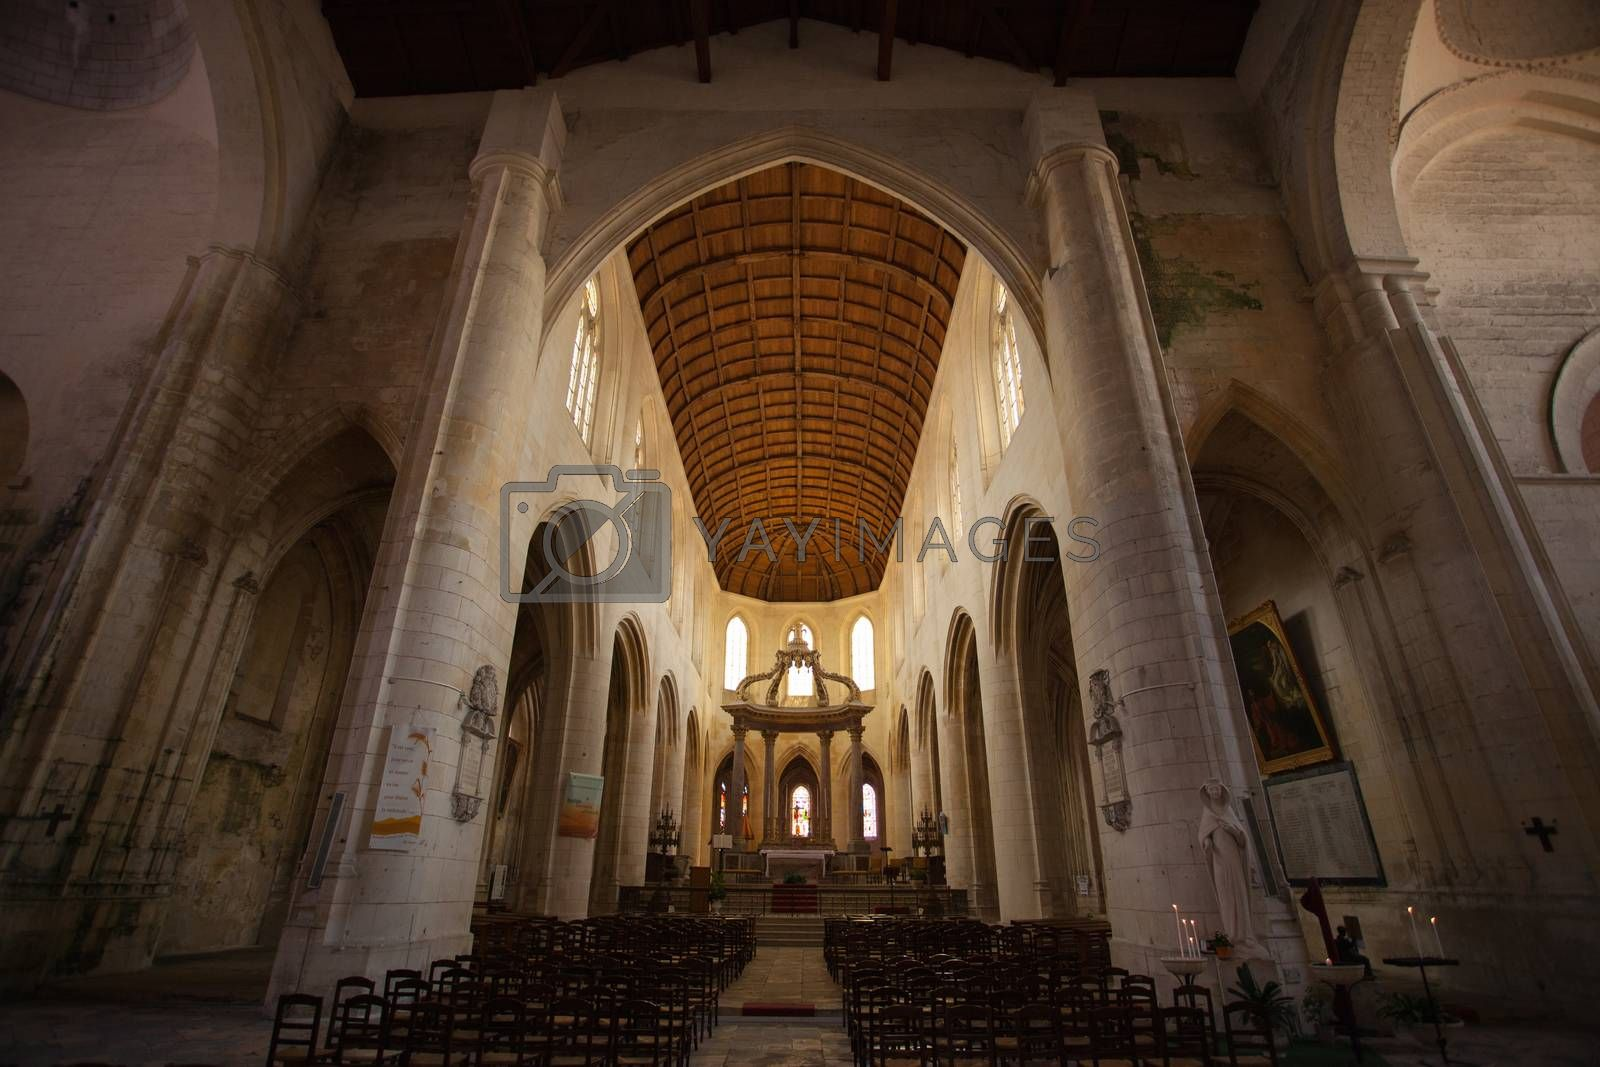 Inside view of the Saint Pierre Cathedral in Saintes France